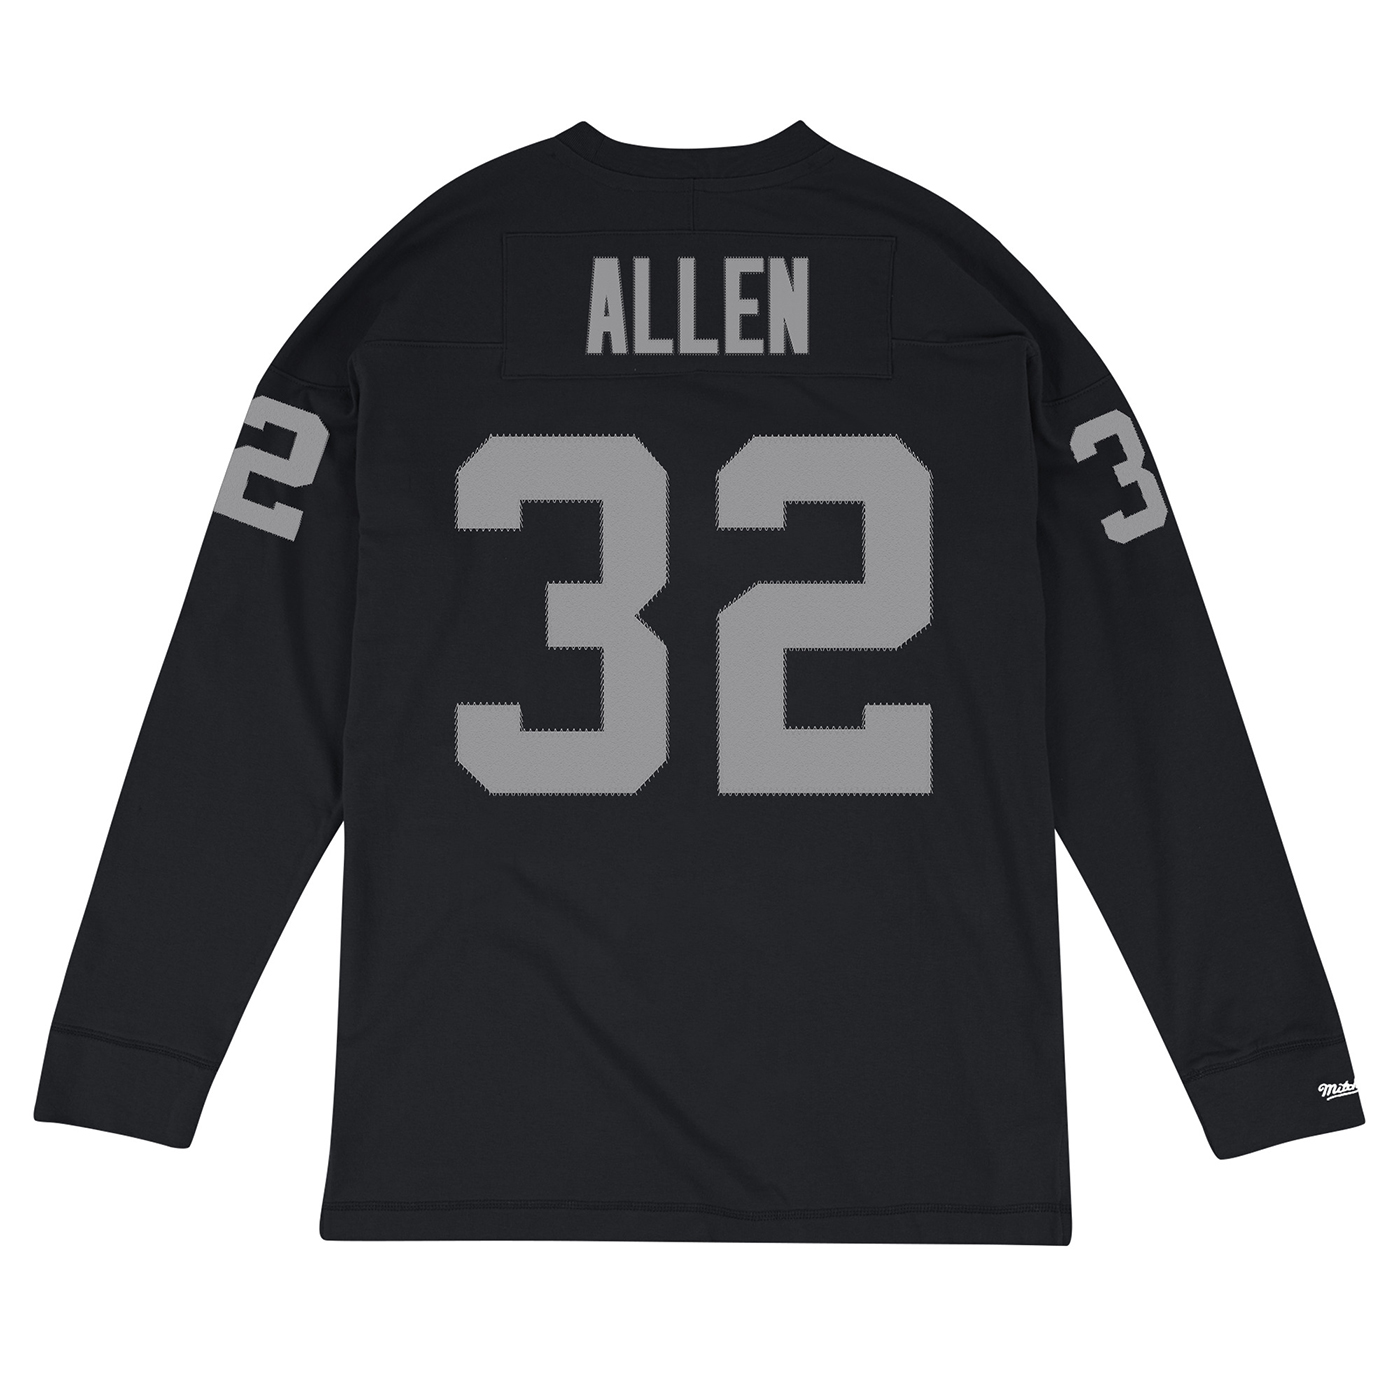 0b731bbe0 Raiders Mitchell & Ness Marcus Allen Name & Number Long Sleeve Tee